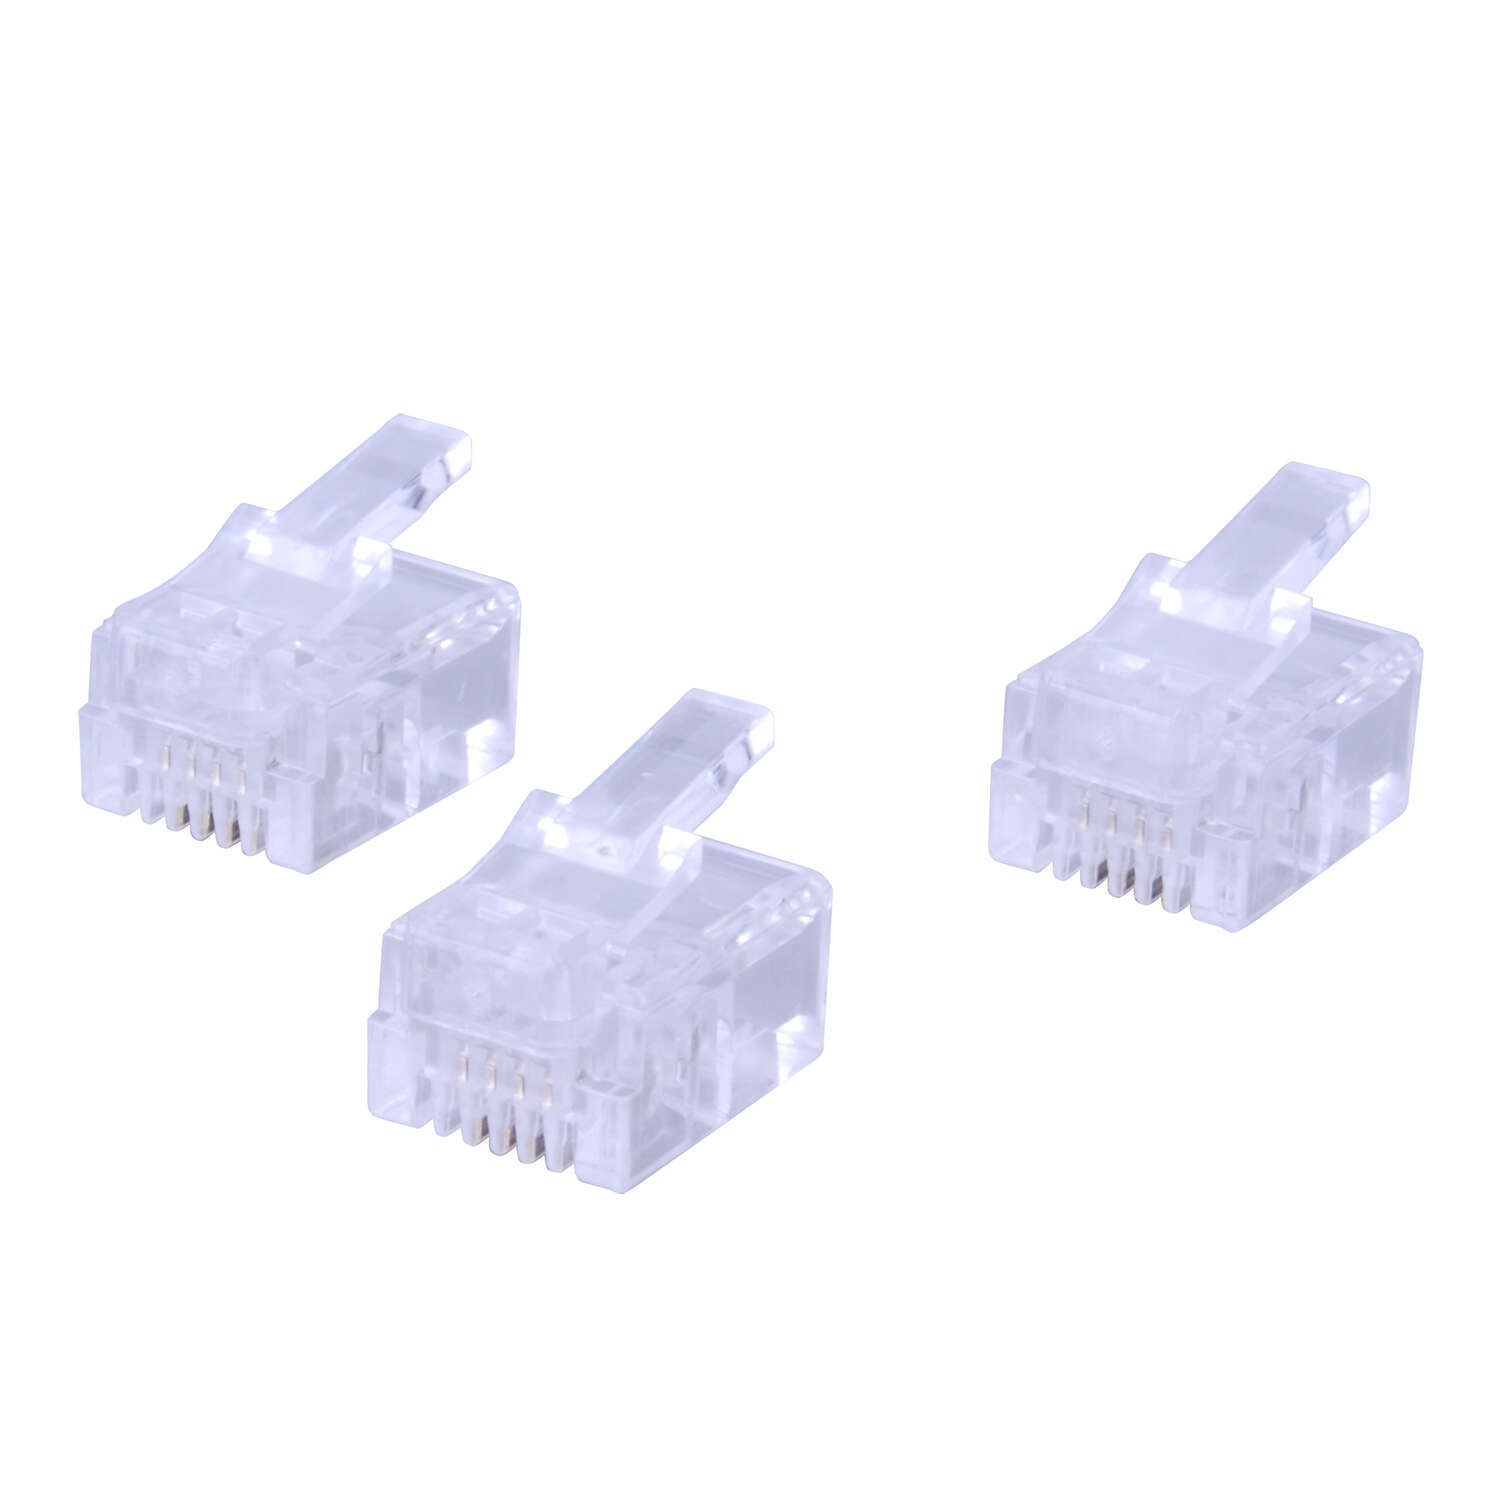 Monster Cable  Just Hook It Up  Telephone Rj11 Modular Crimp Plug Connectors